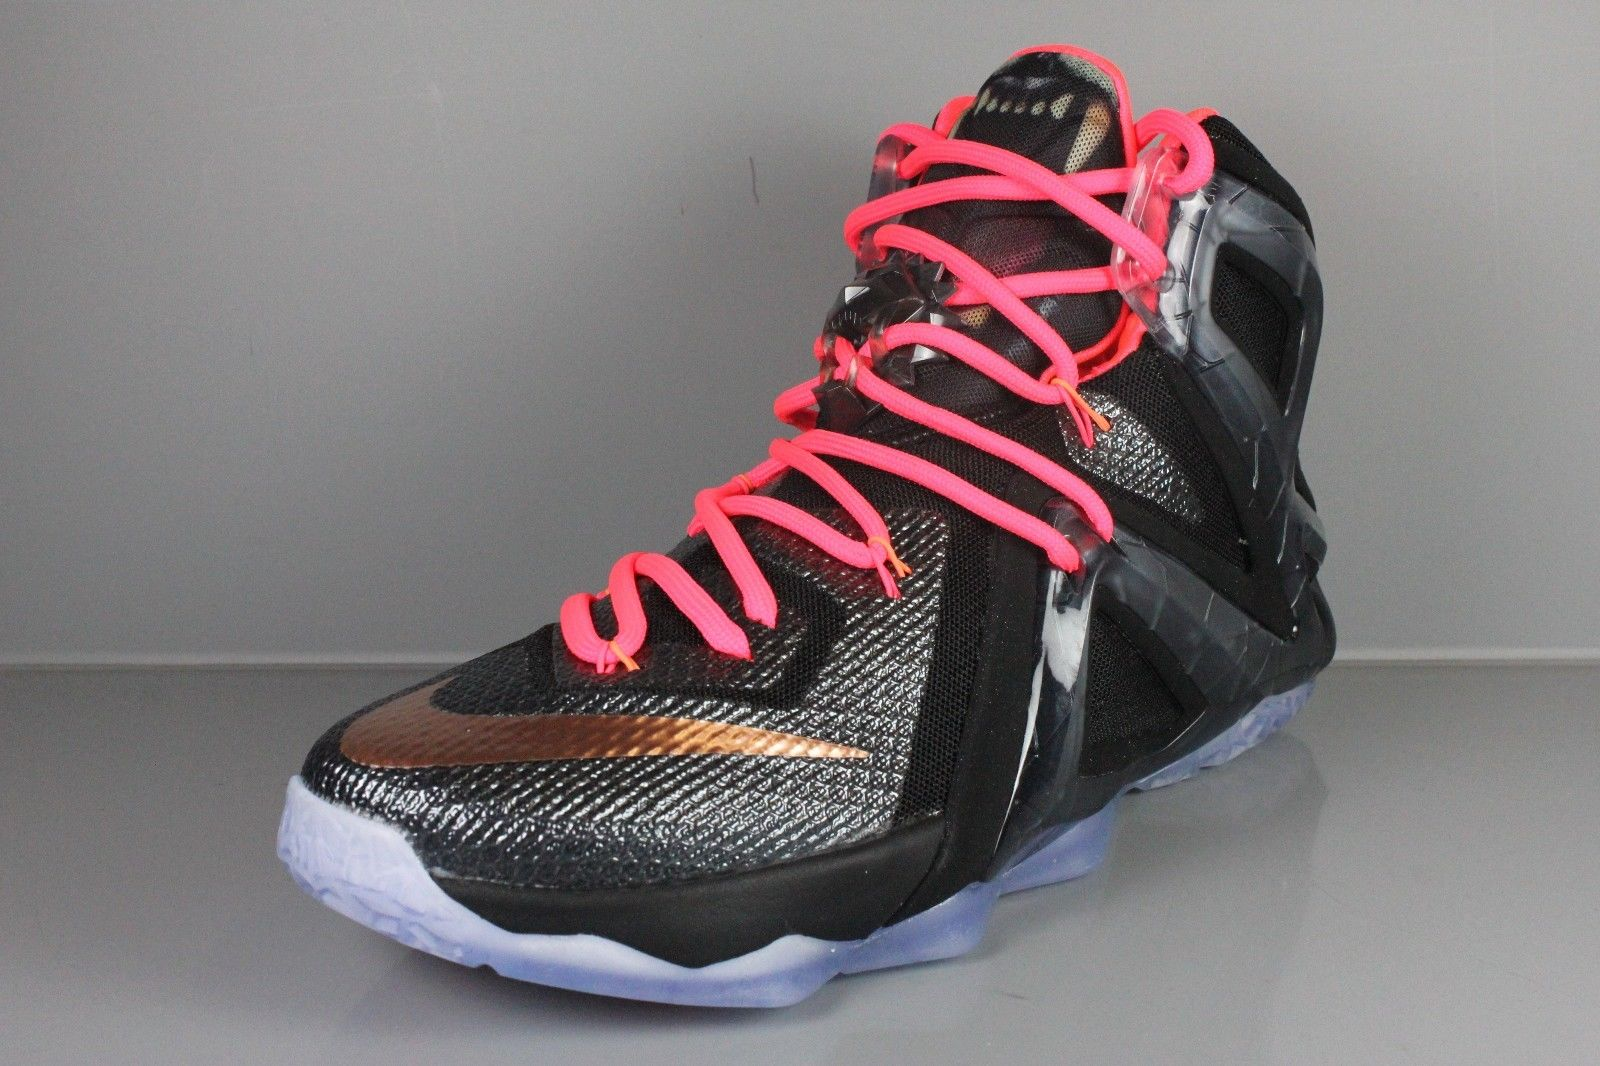 8113a62eef696 Will LeBron James Ever Wear This Nike LeBron 12 Elite